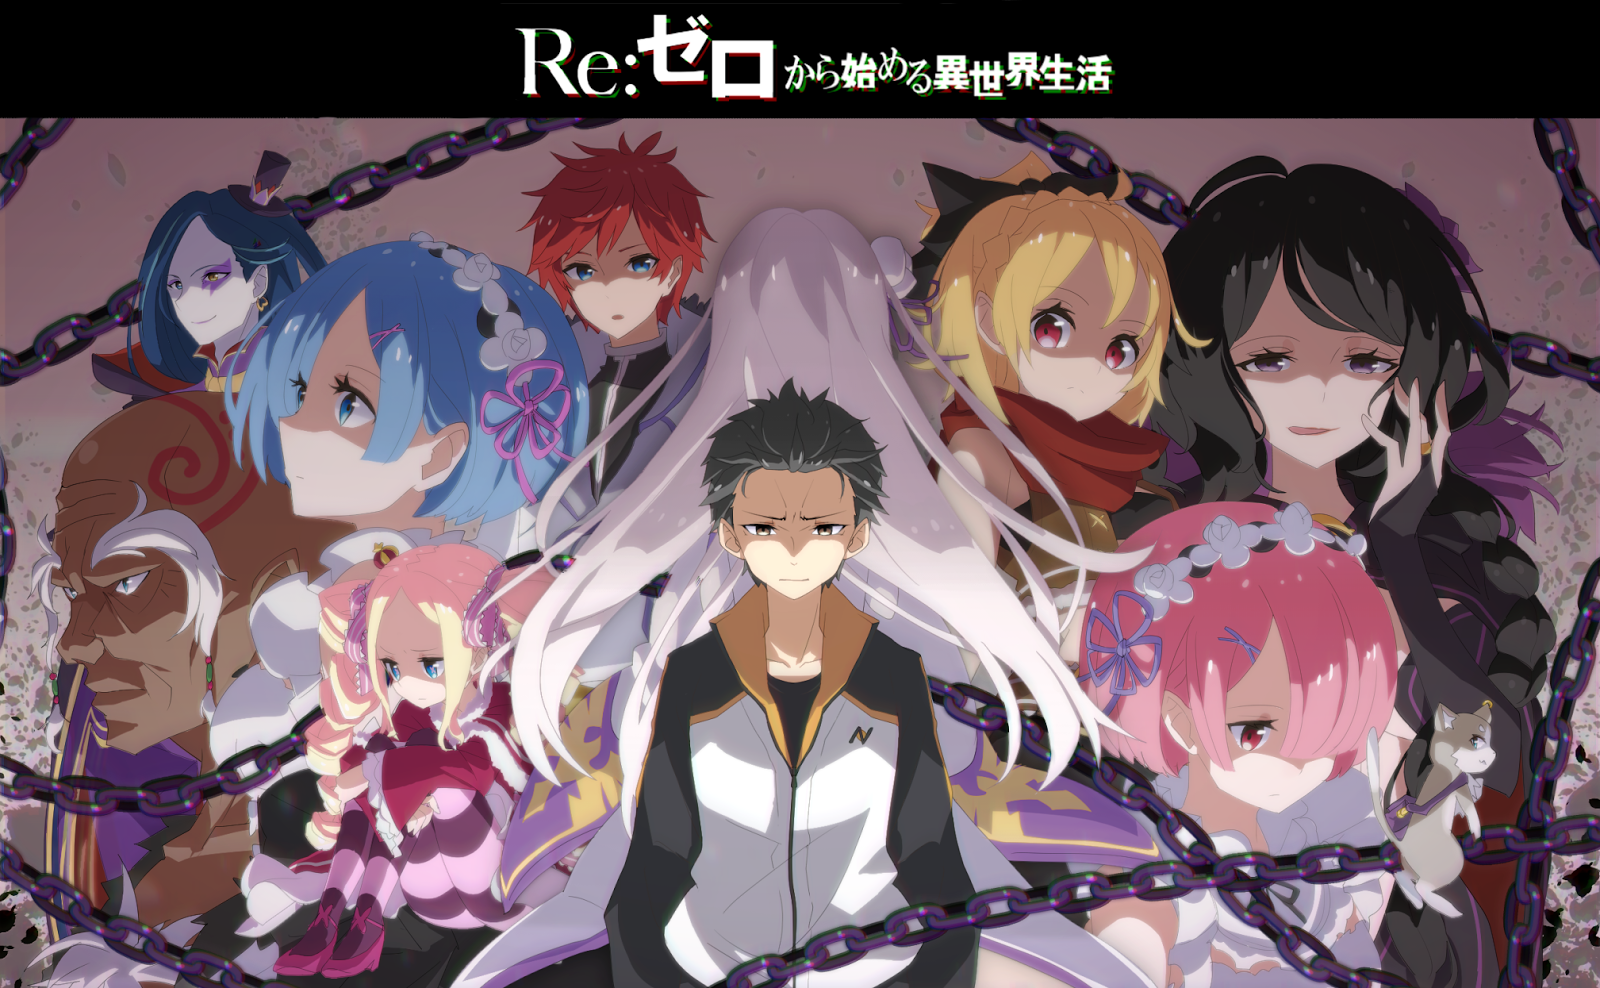 Cover image of Re:ZERO -Starting Life in Another World- Season 2